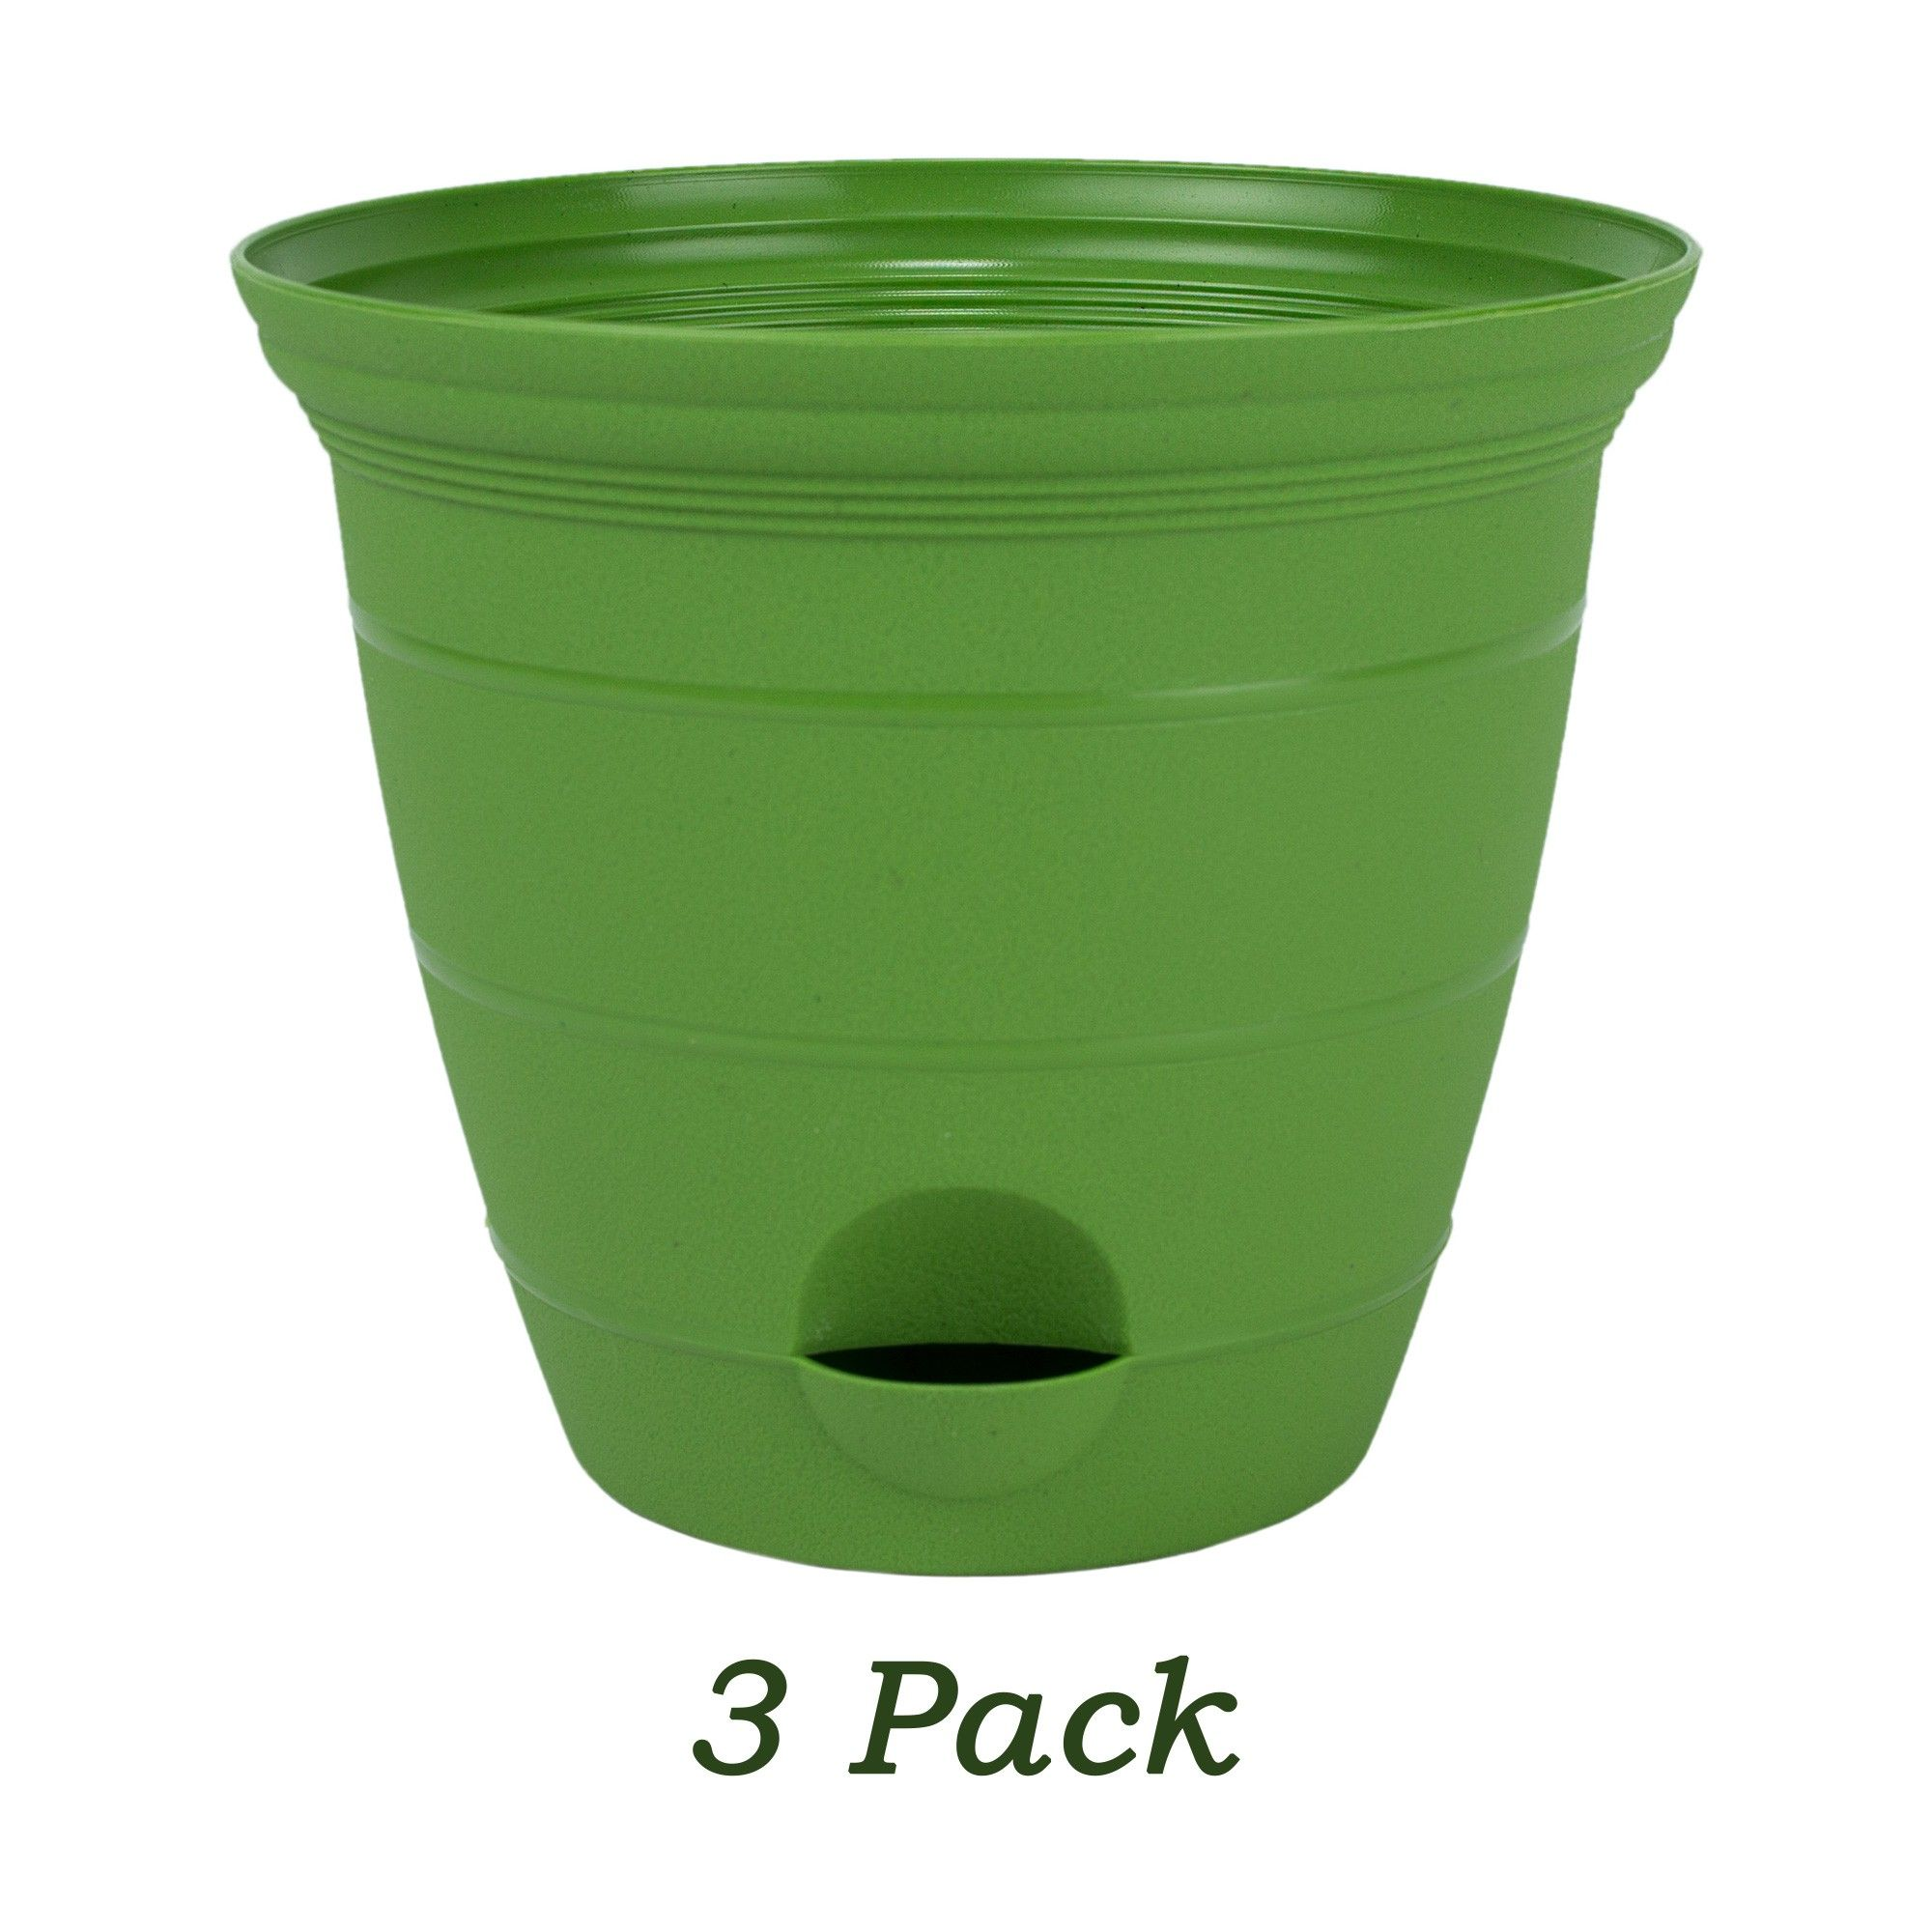 Misco 3 Pack 12 Inch Plastic Self Watering Terra Flower Plant Pot Garden Potted Planter Green Planting Flowers Garden Pots Self Watering